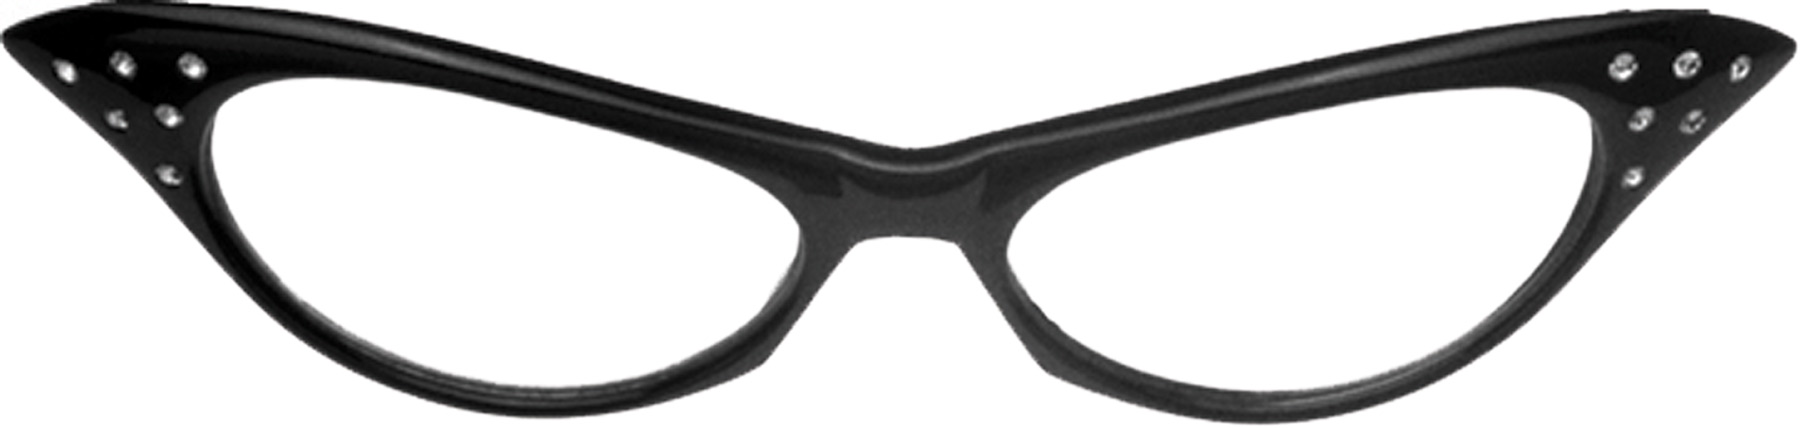 Featured Image for Black 50s Rhinestone Glasses